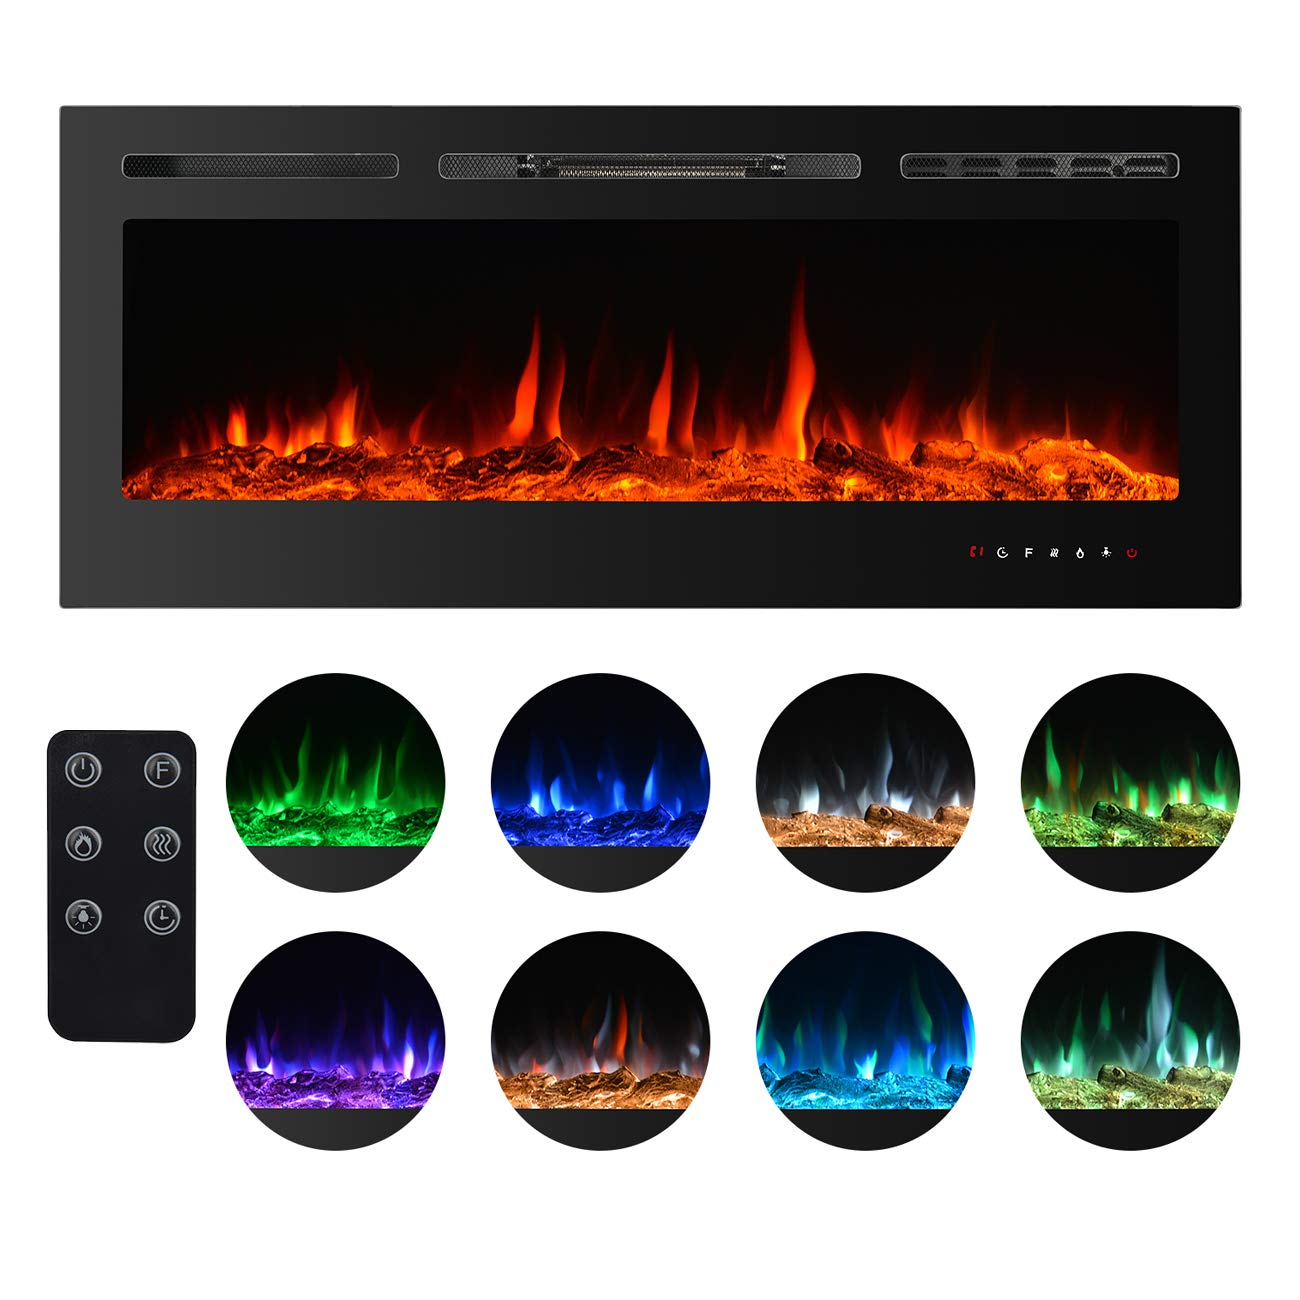 BEAMNOVA 50 Inch Electric Fireplace Black Freestanding Heater Insert Wall Mounted Glass View Log Flame w//Remote